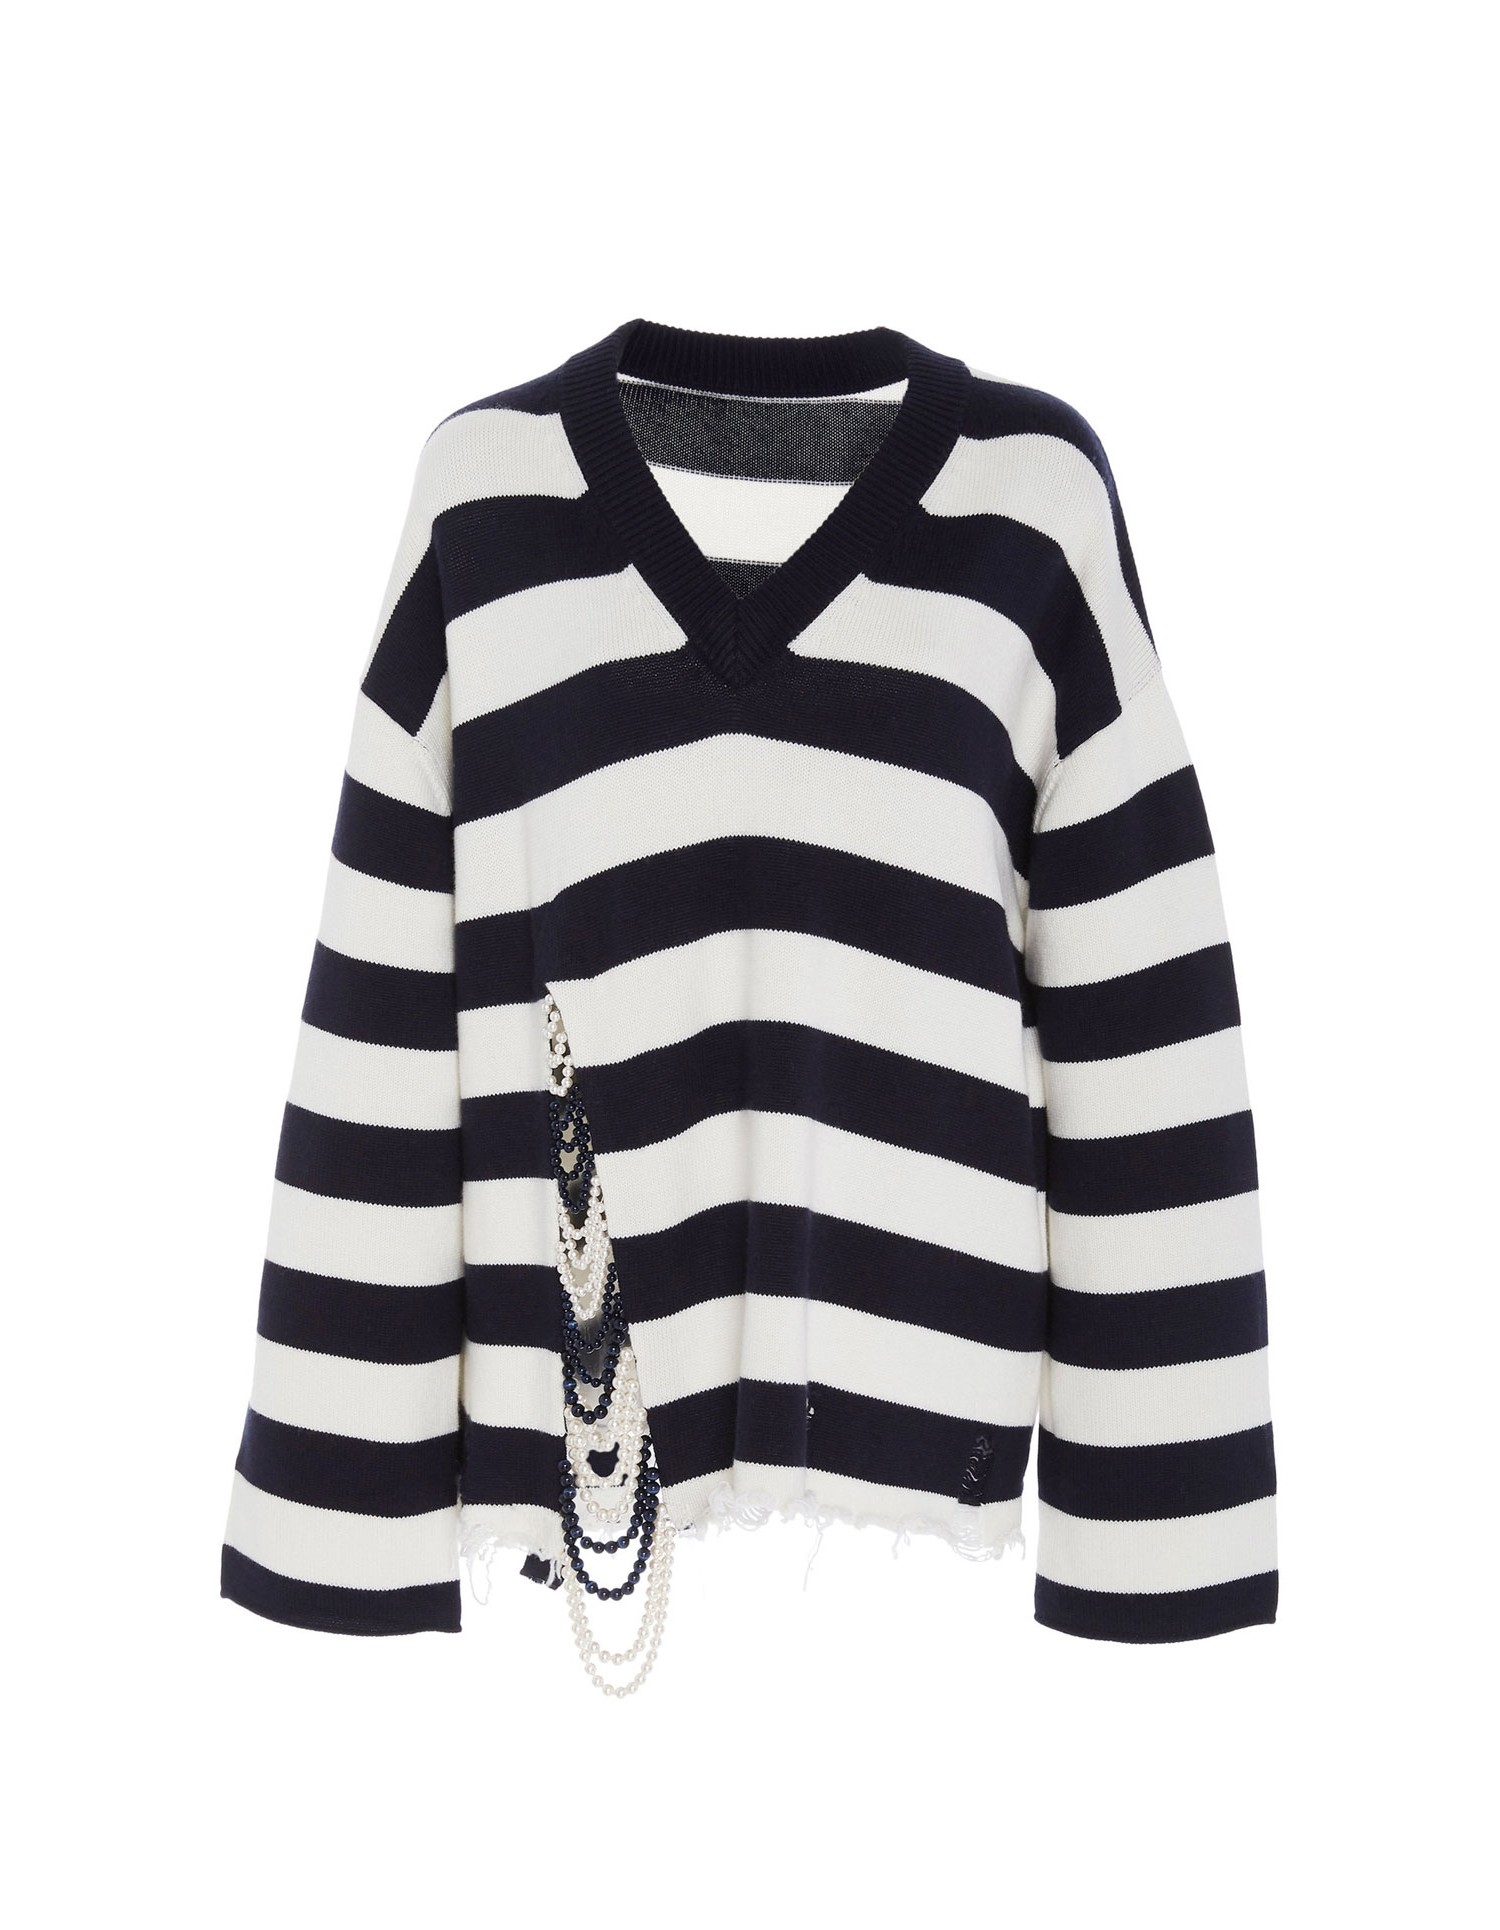 Monse Unisex Front Pearl V-Neck Mariniere Sweater on Model Front